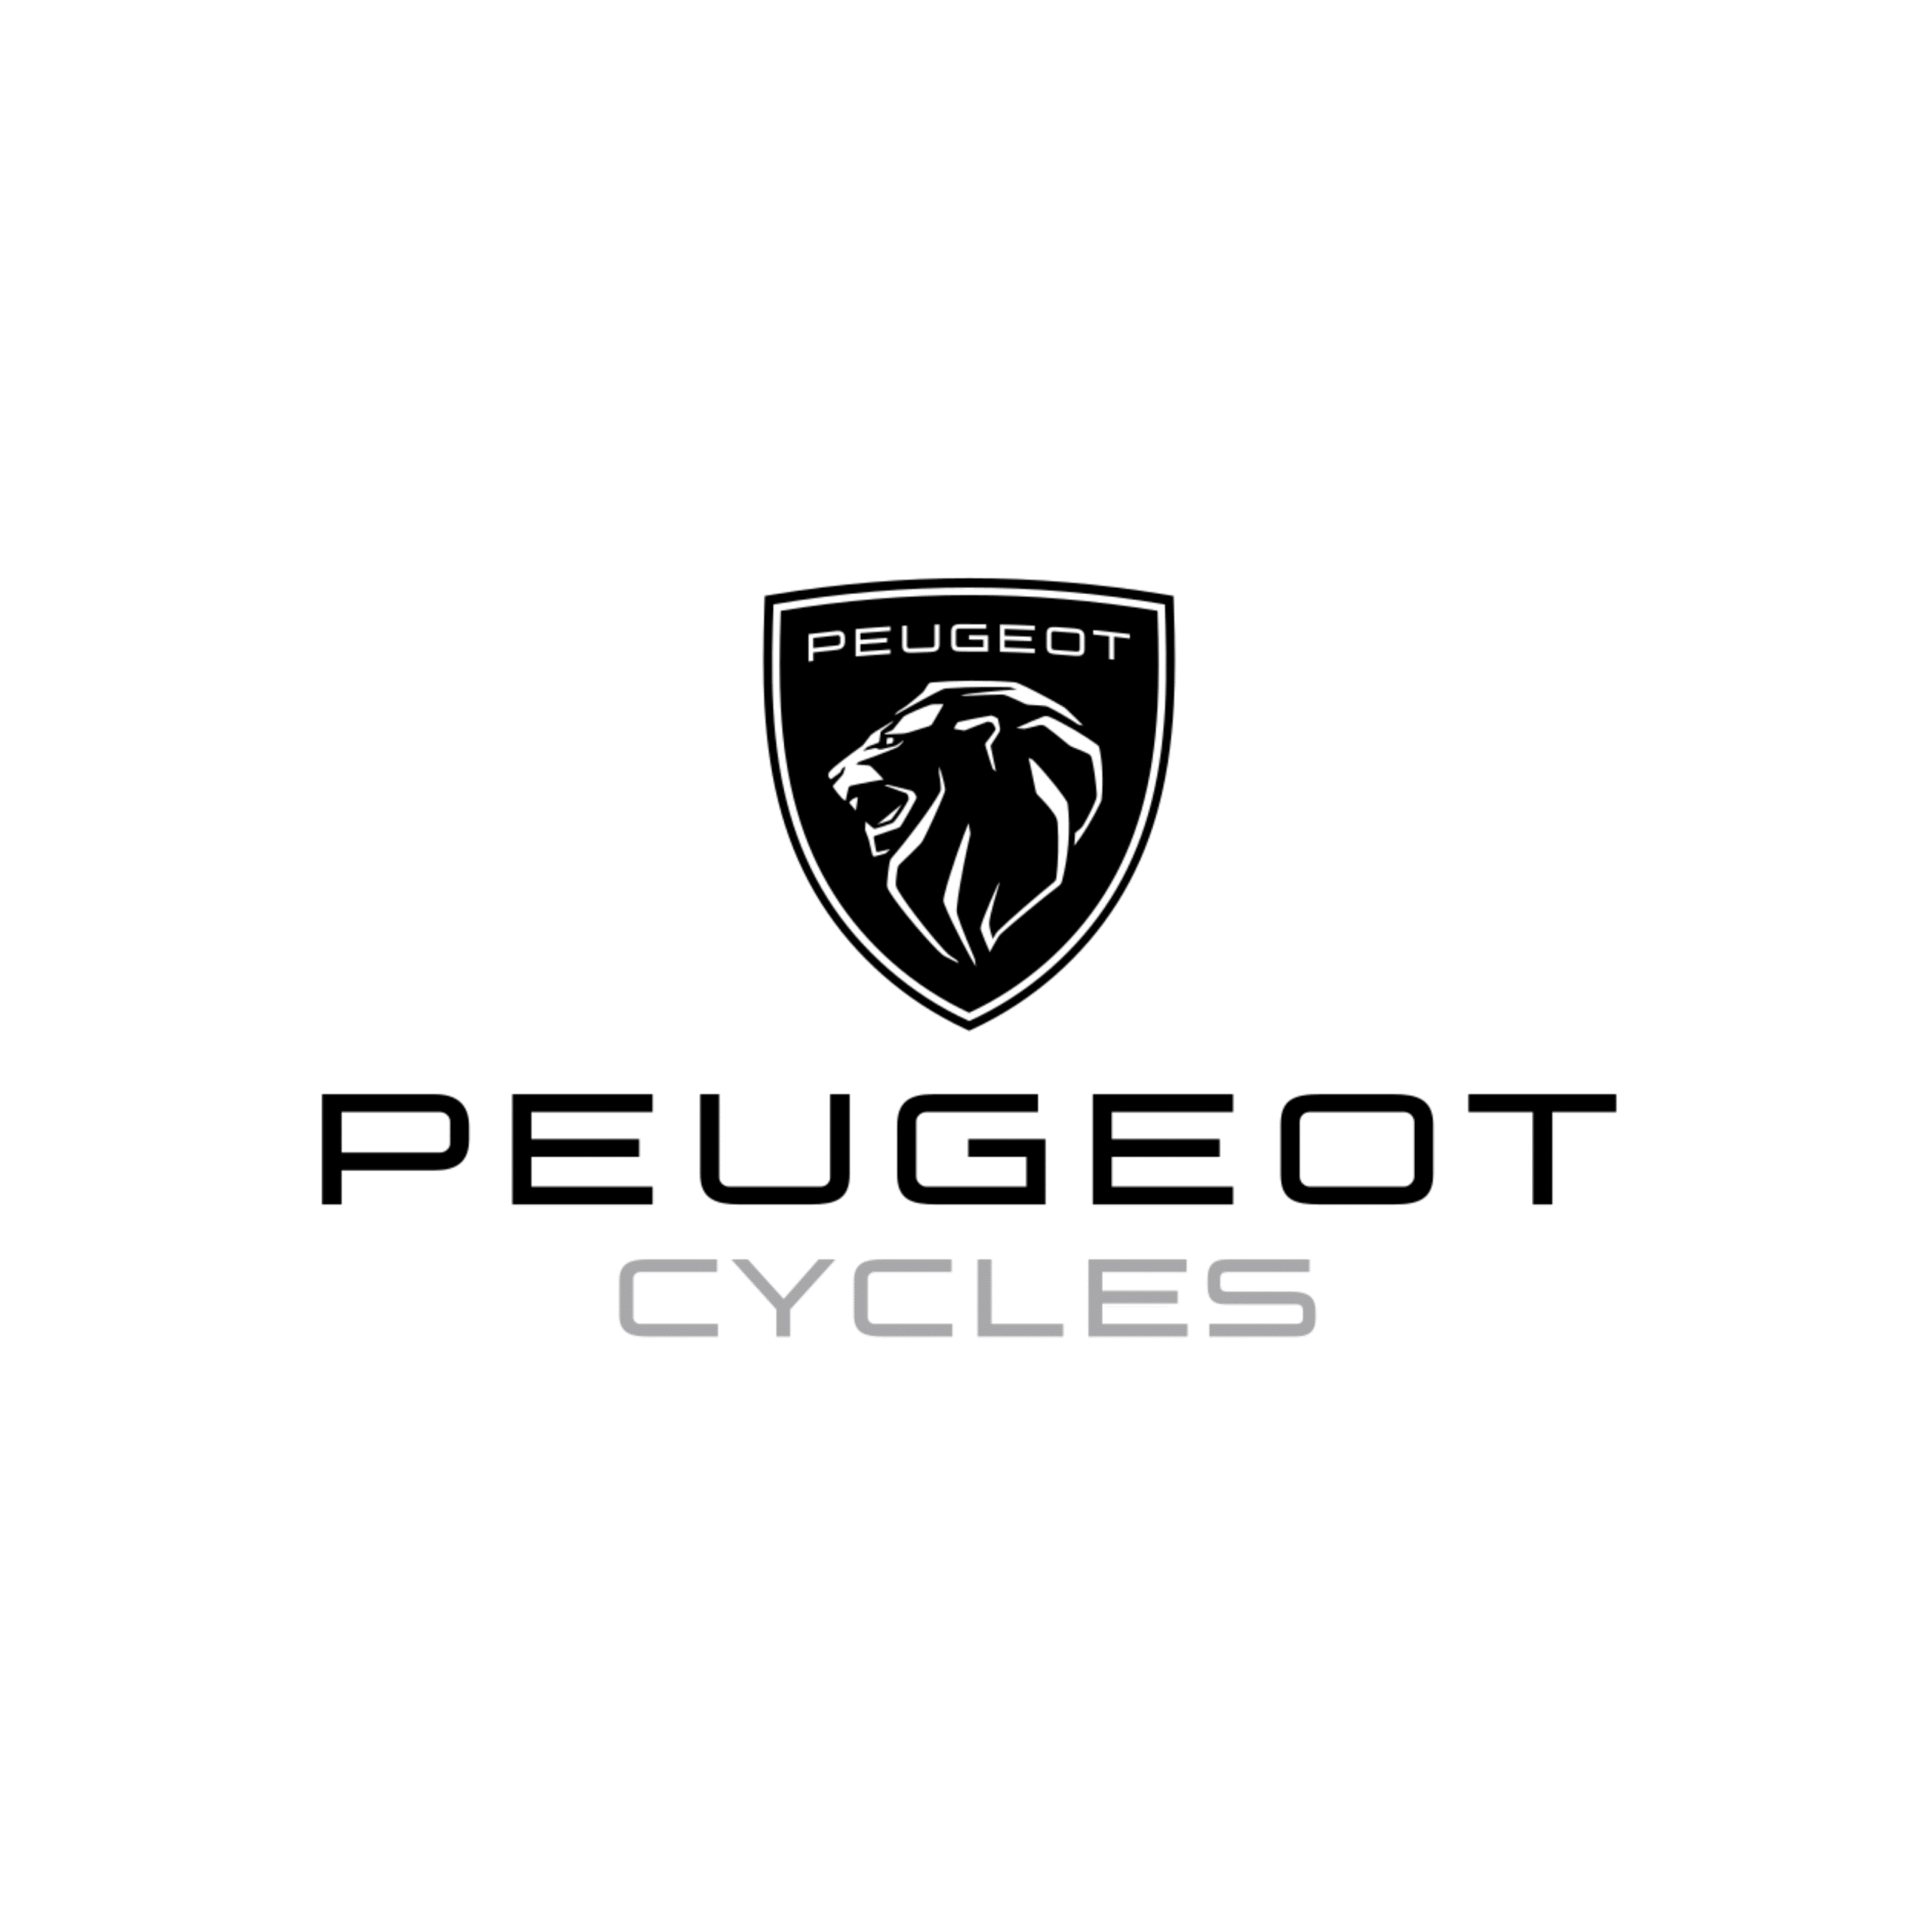 peugeot cycles png